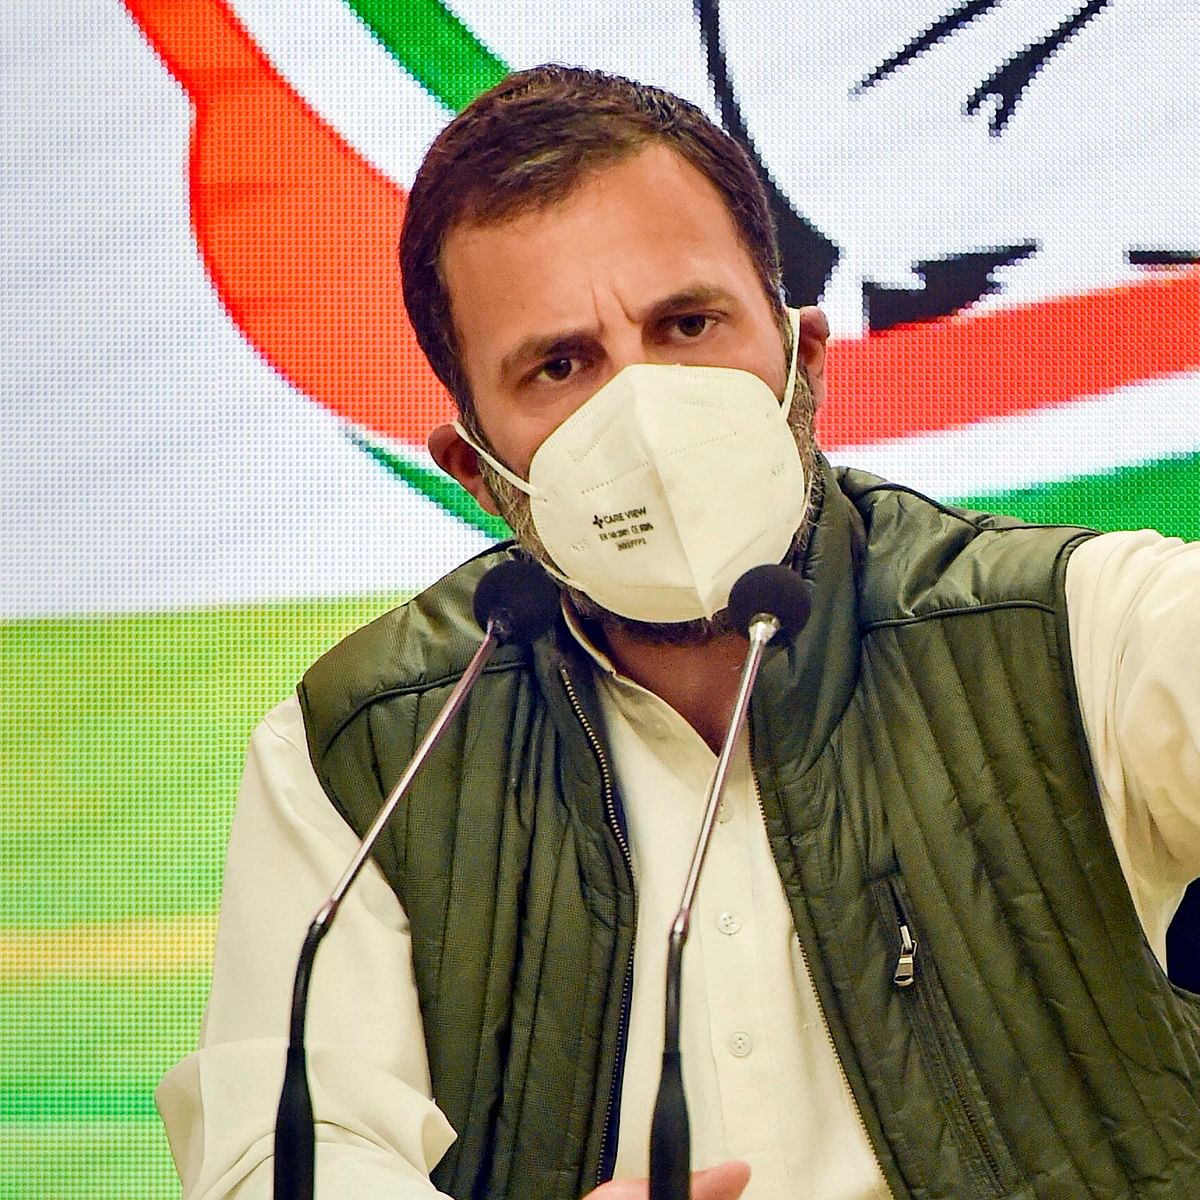 Uttarakhand glacier burst: Rahul Gandhi expresses solidarity, says whole country is with those affected